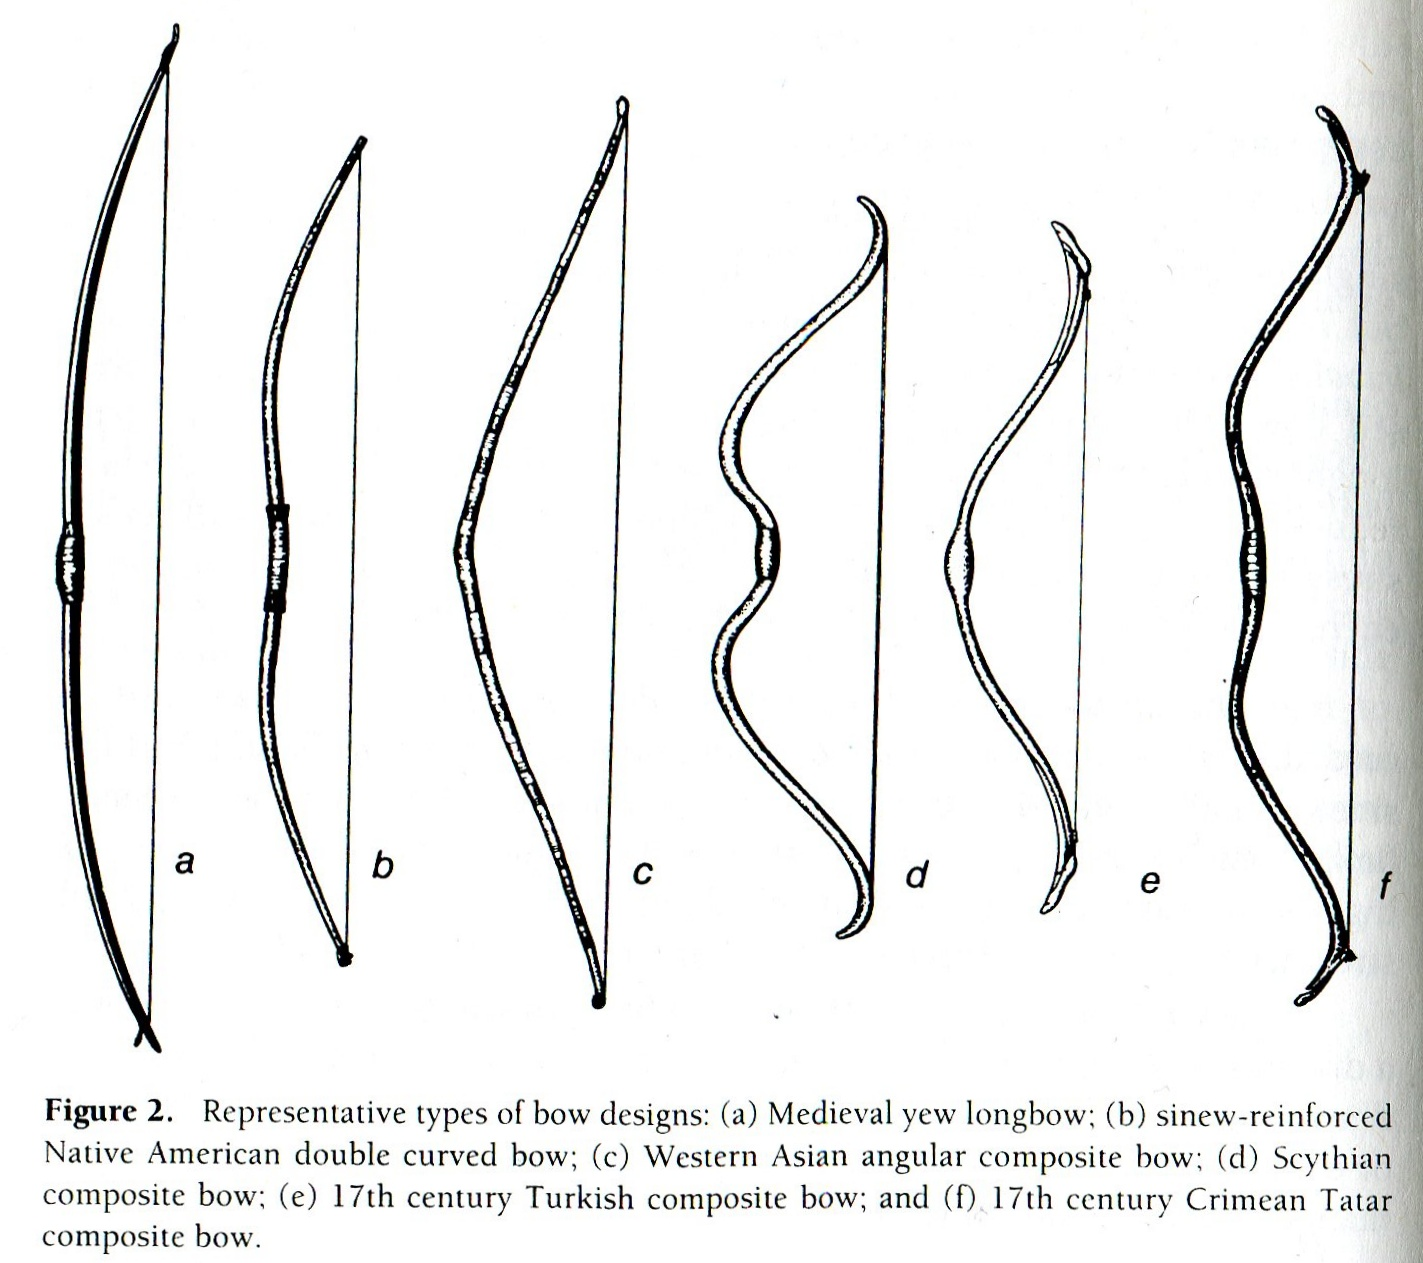 Composite bows weapon of ancient nomadic equestrian cultures